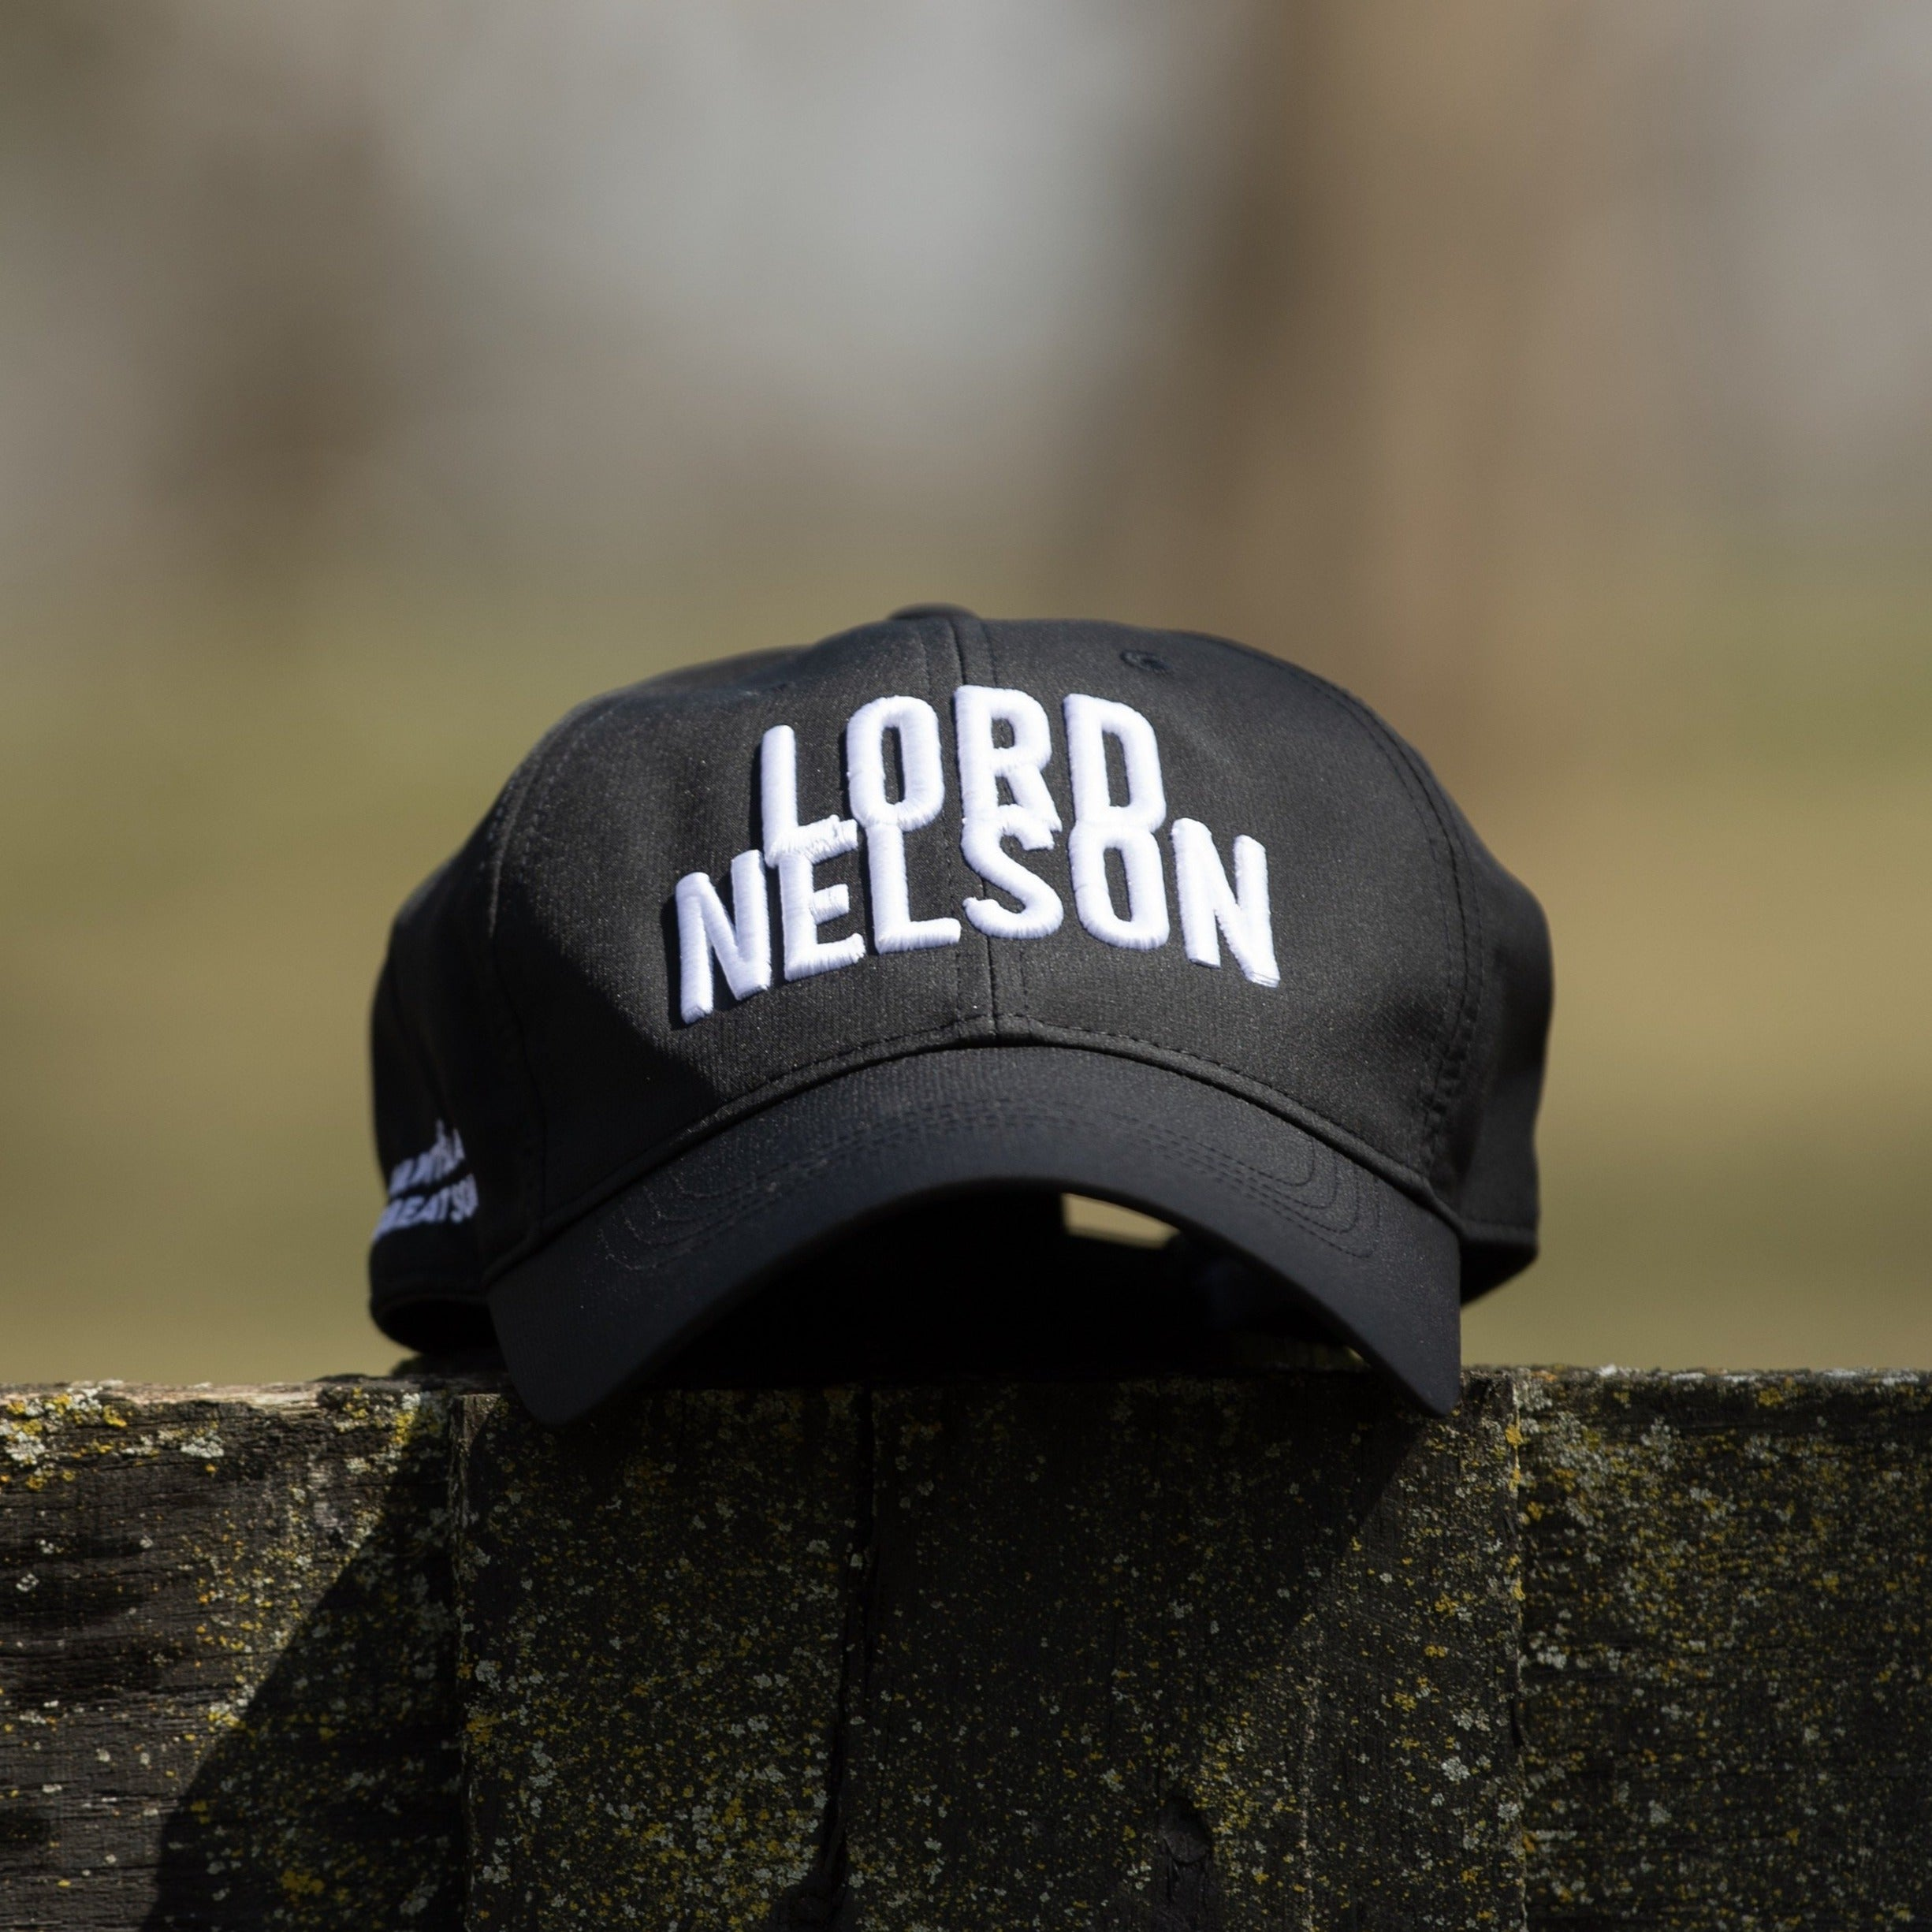 The Lord Nelson Nike Hat